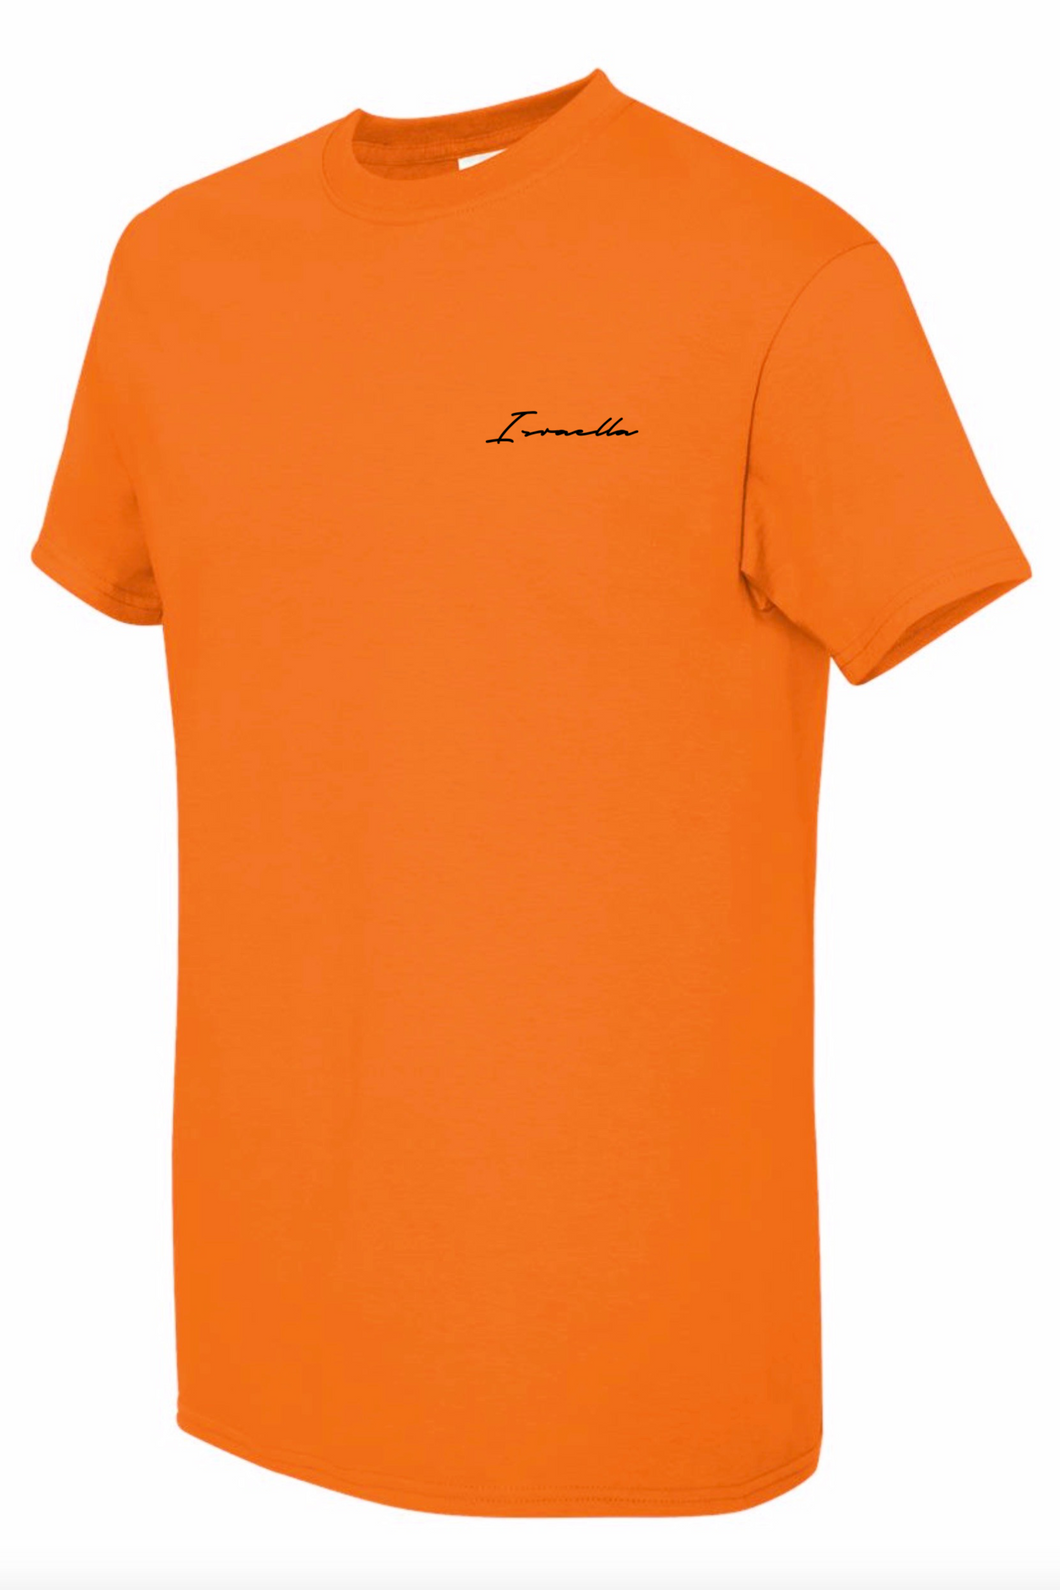 Israella Tee Kids (Neon Orange)